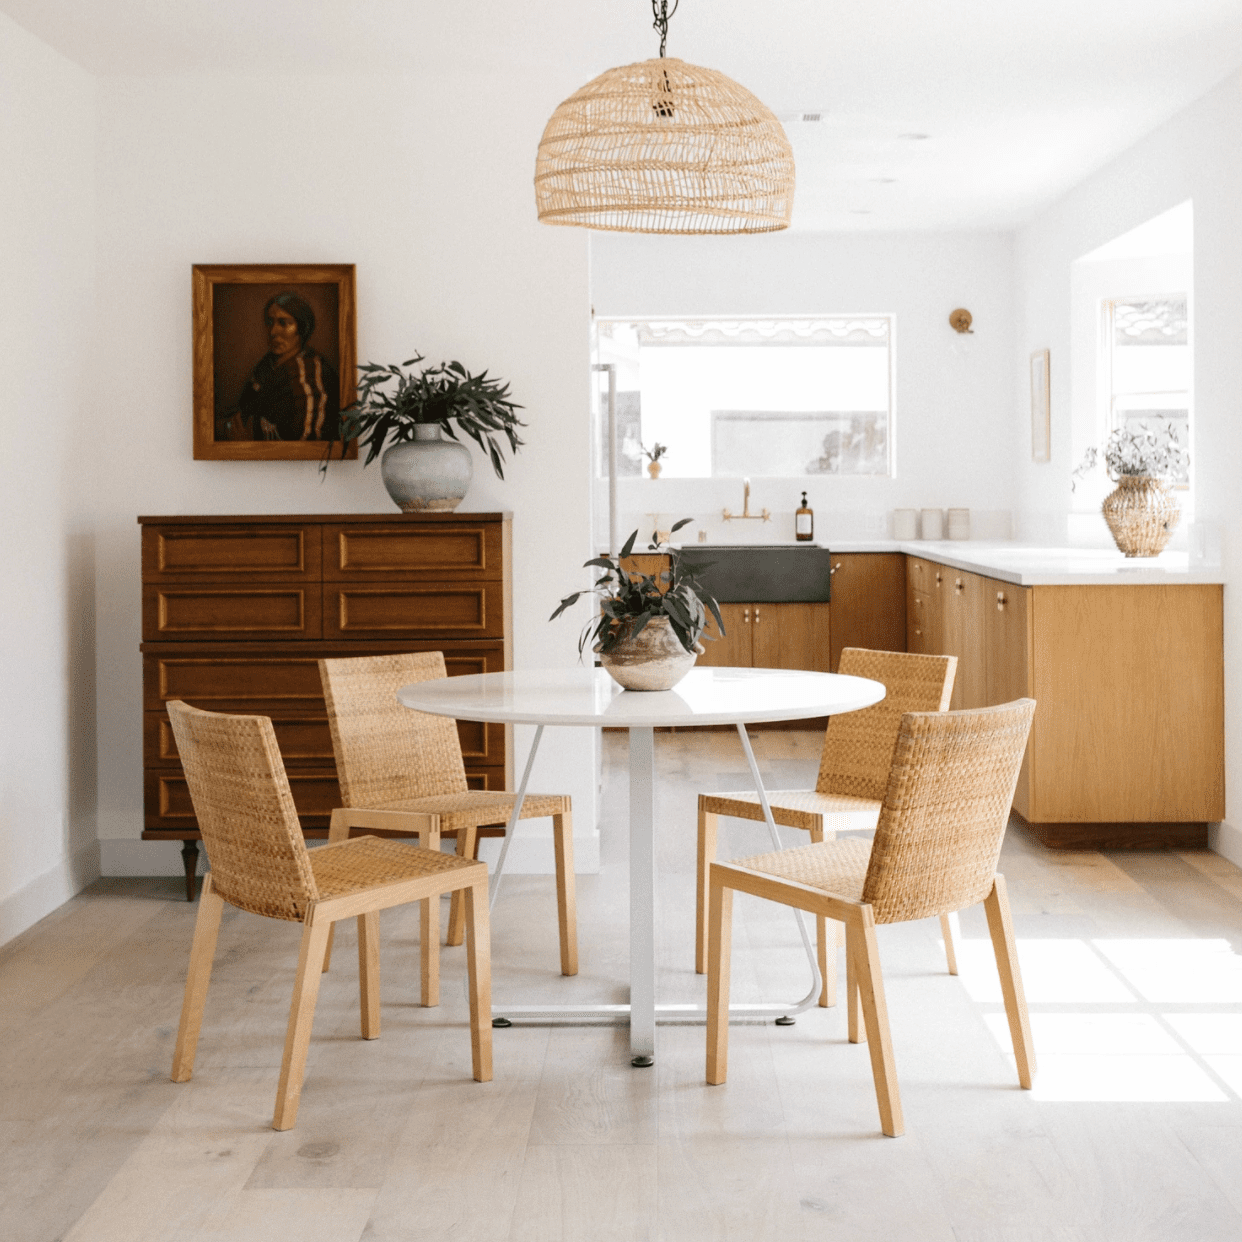 An open-concept kitchen leading into a small dining room